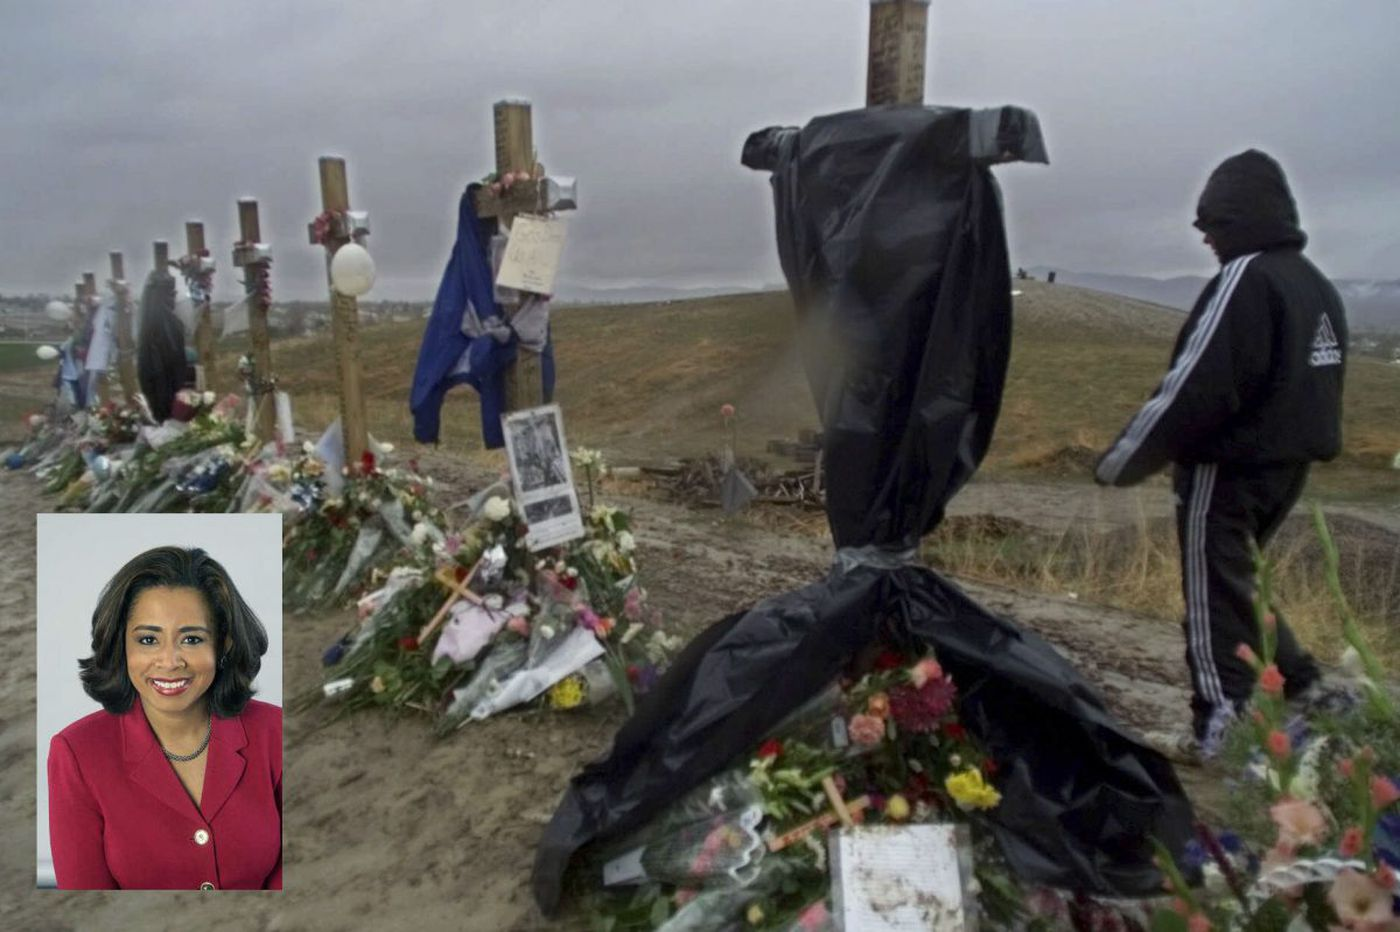 Littleton native Renee Chenault-Fattah on Columbine anniversary: 'Not enough has changed.'   Perspective